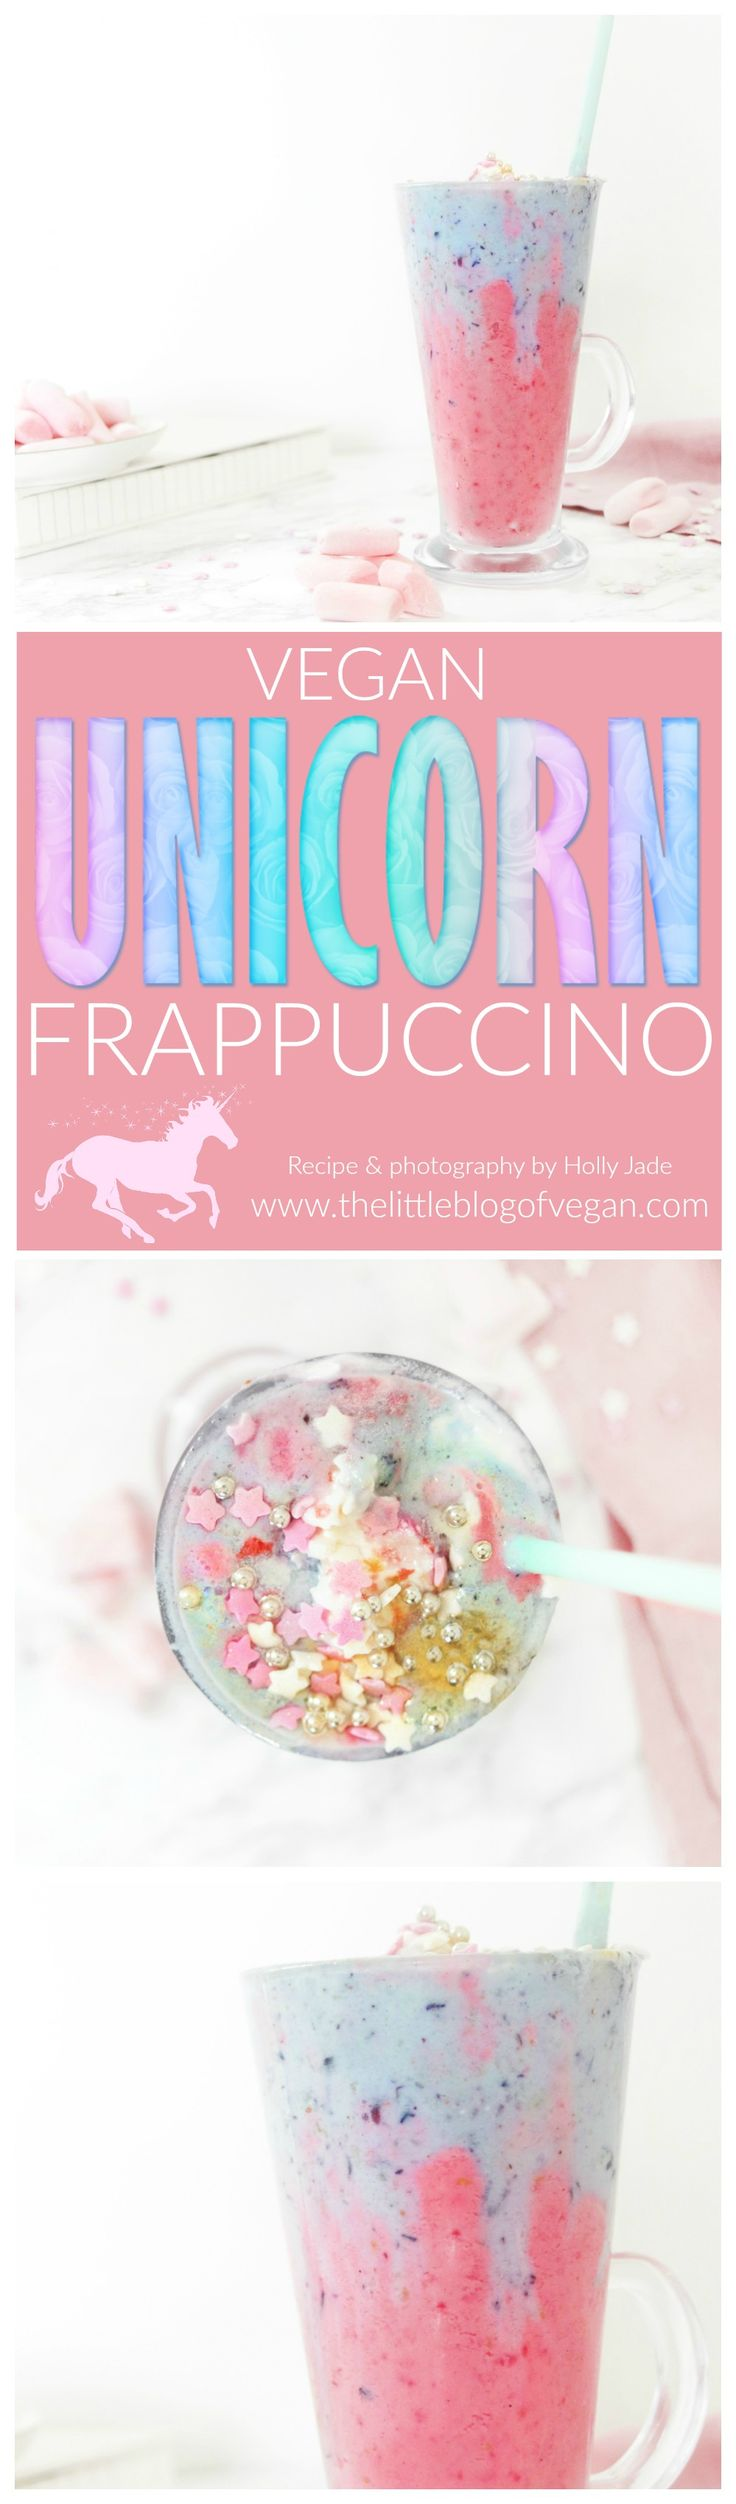 A magical & mystical vegan unicorn drink, with raspberry, blueberry, coconut and a dash of magic.